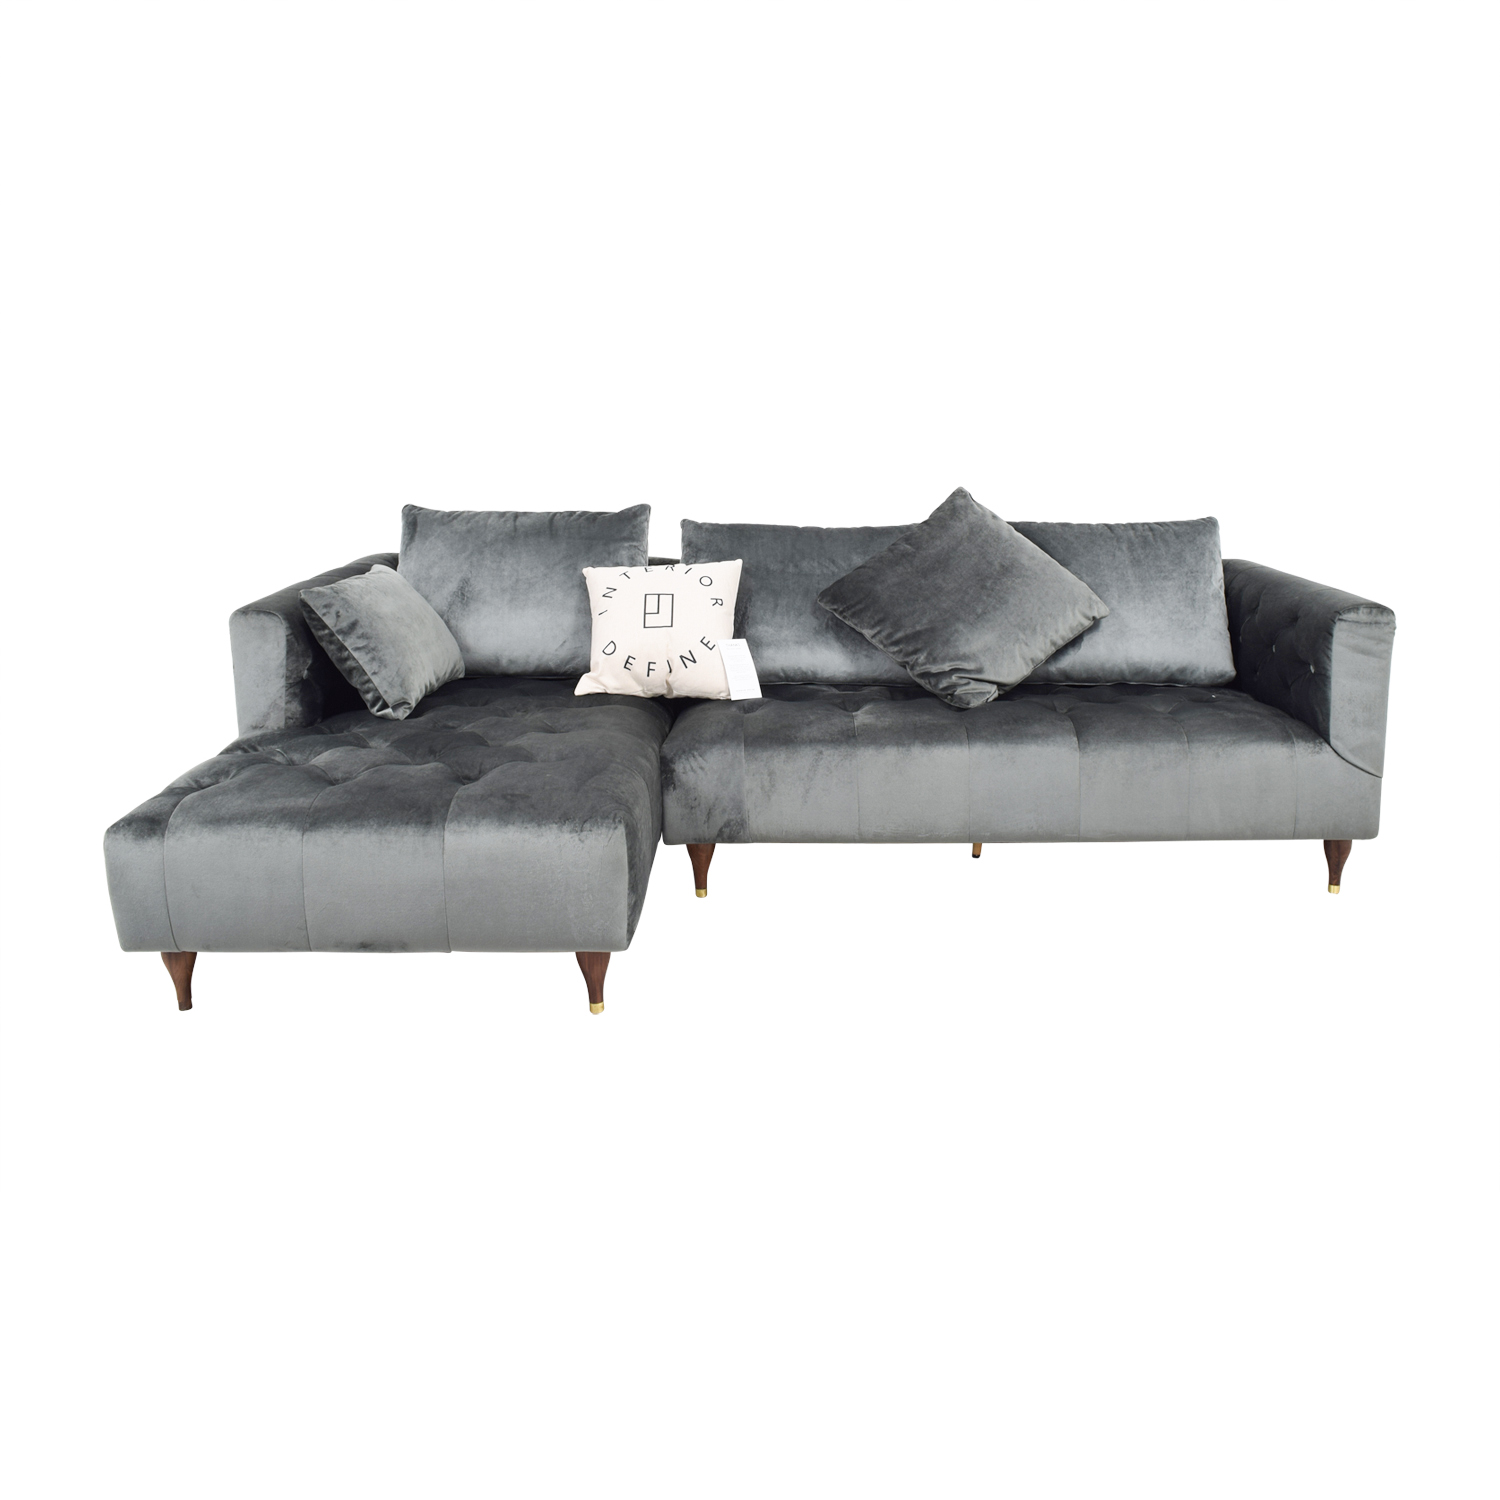 65 Off Ms Chesterfield Narwhal Left Chaise Sectional